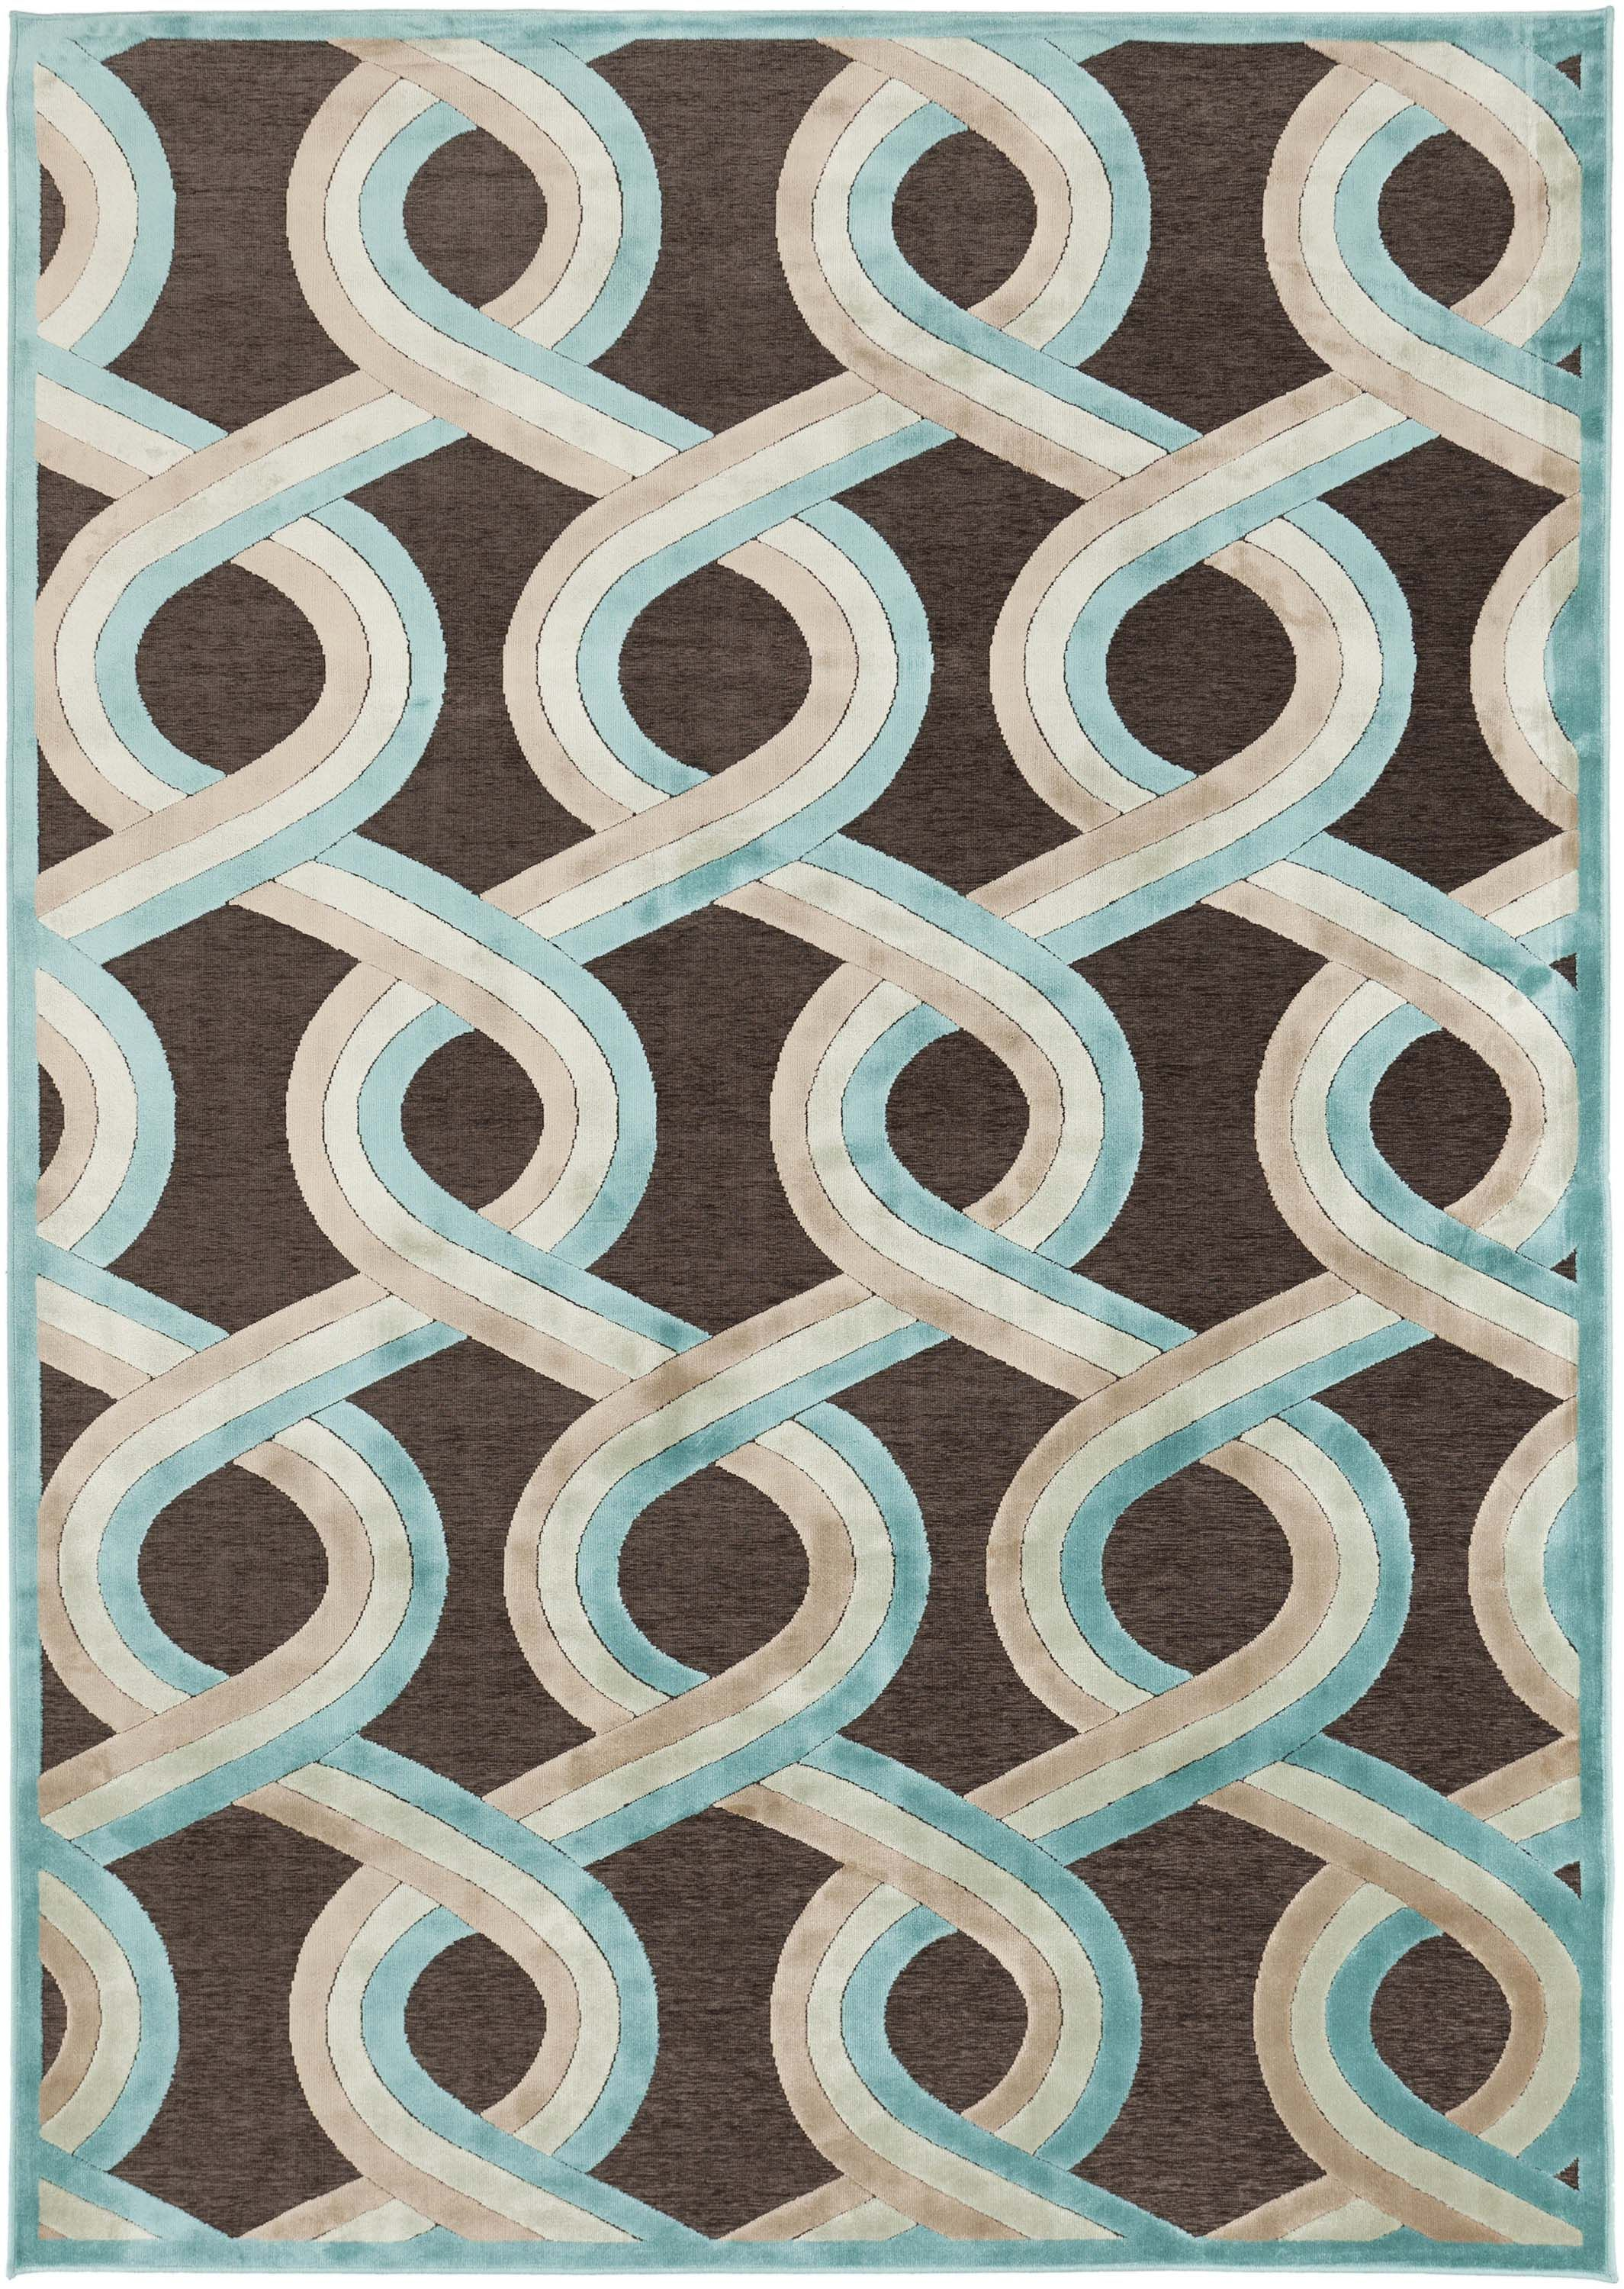 Turquoise Rugs In Swirl Patterns Modern House